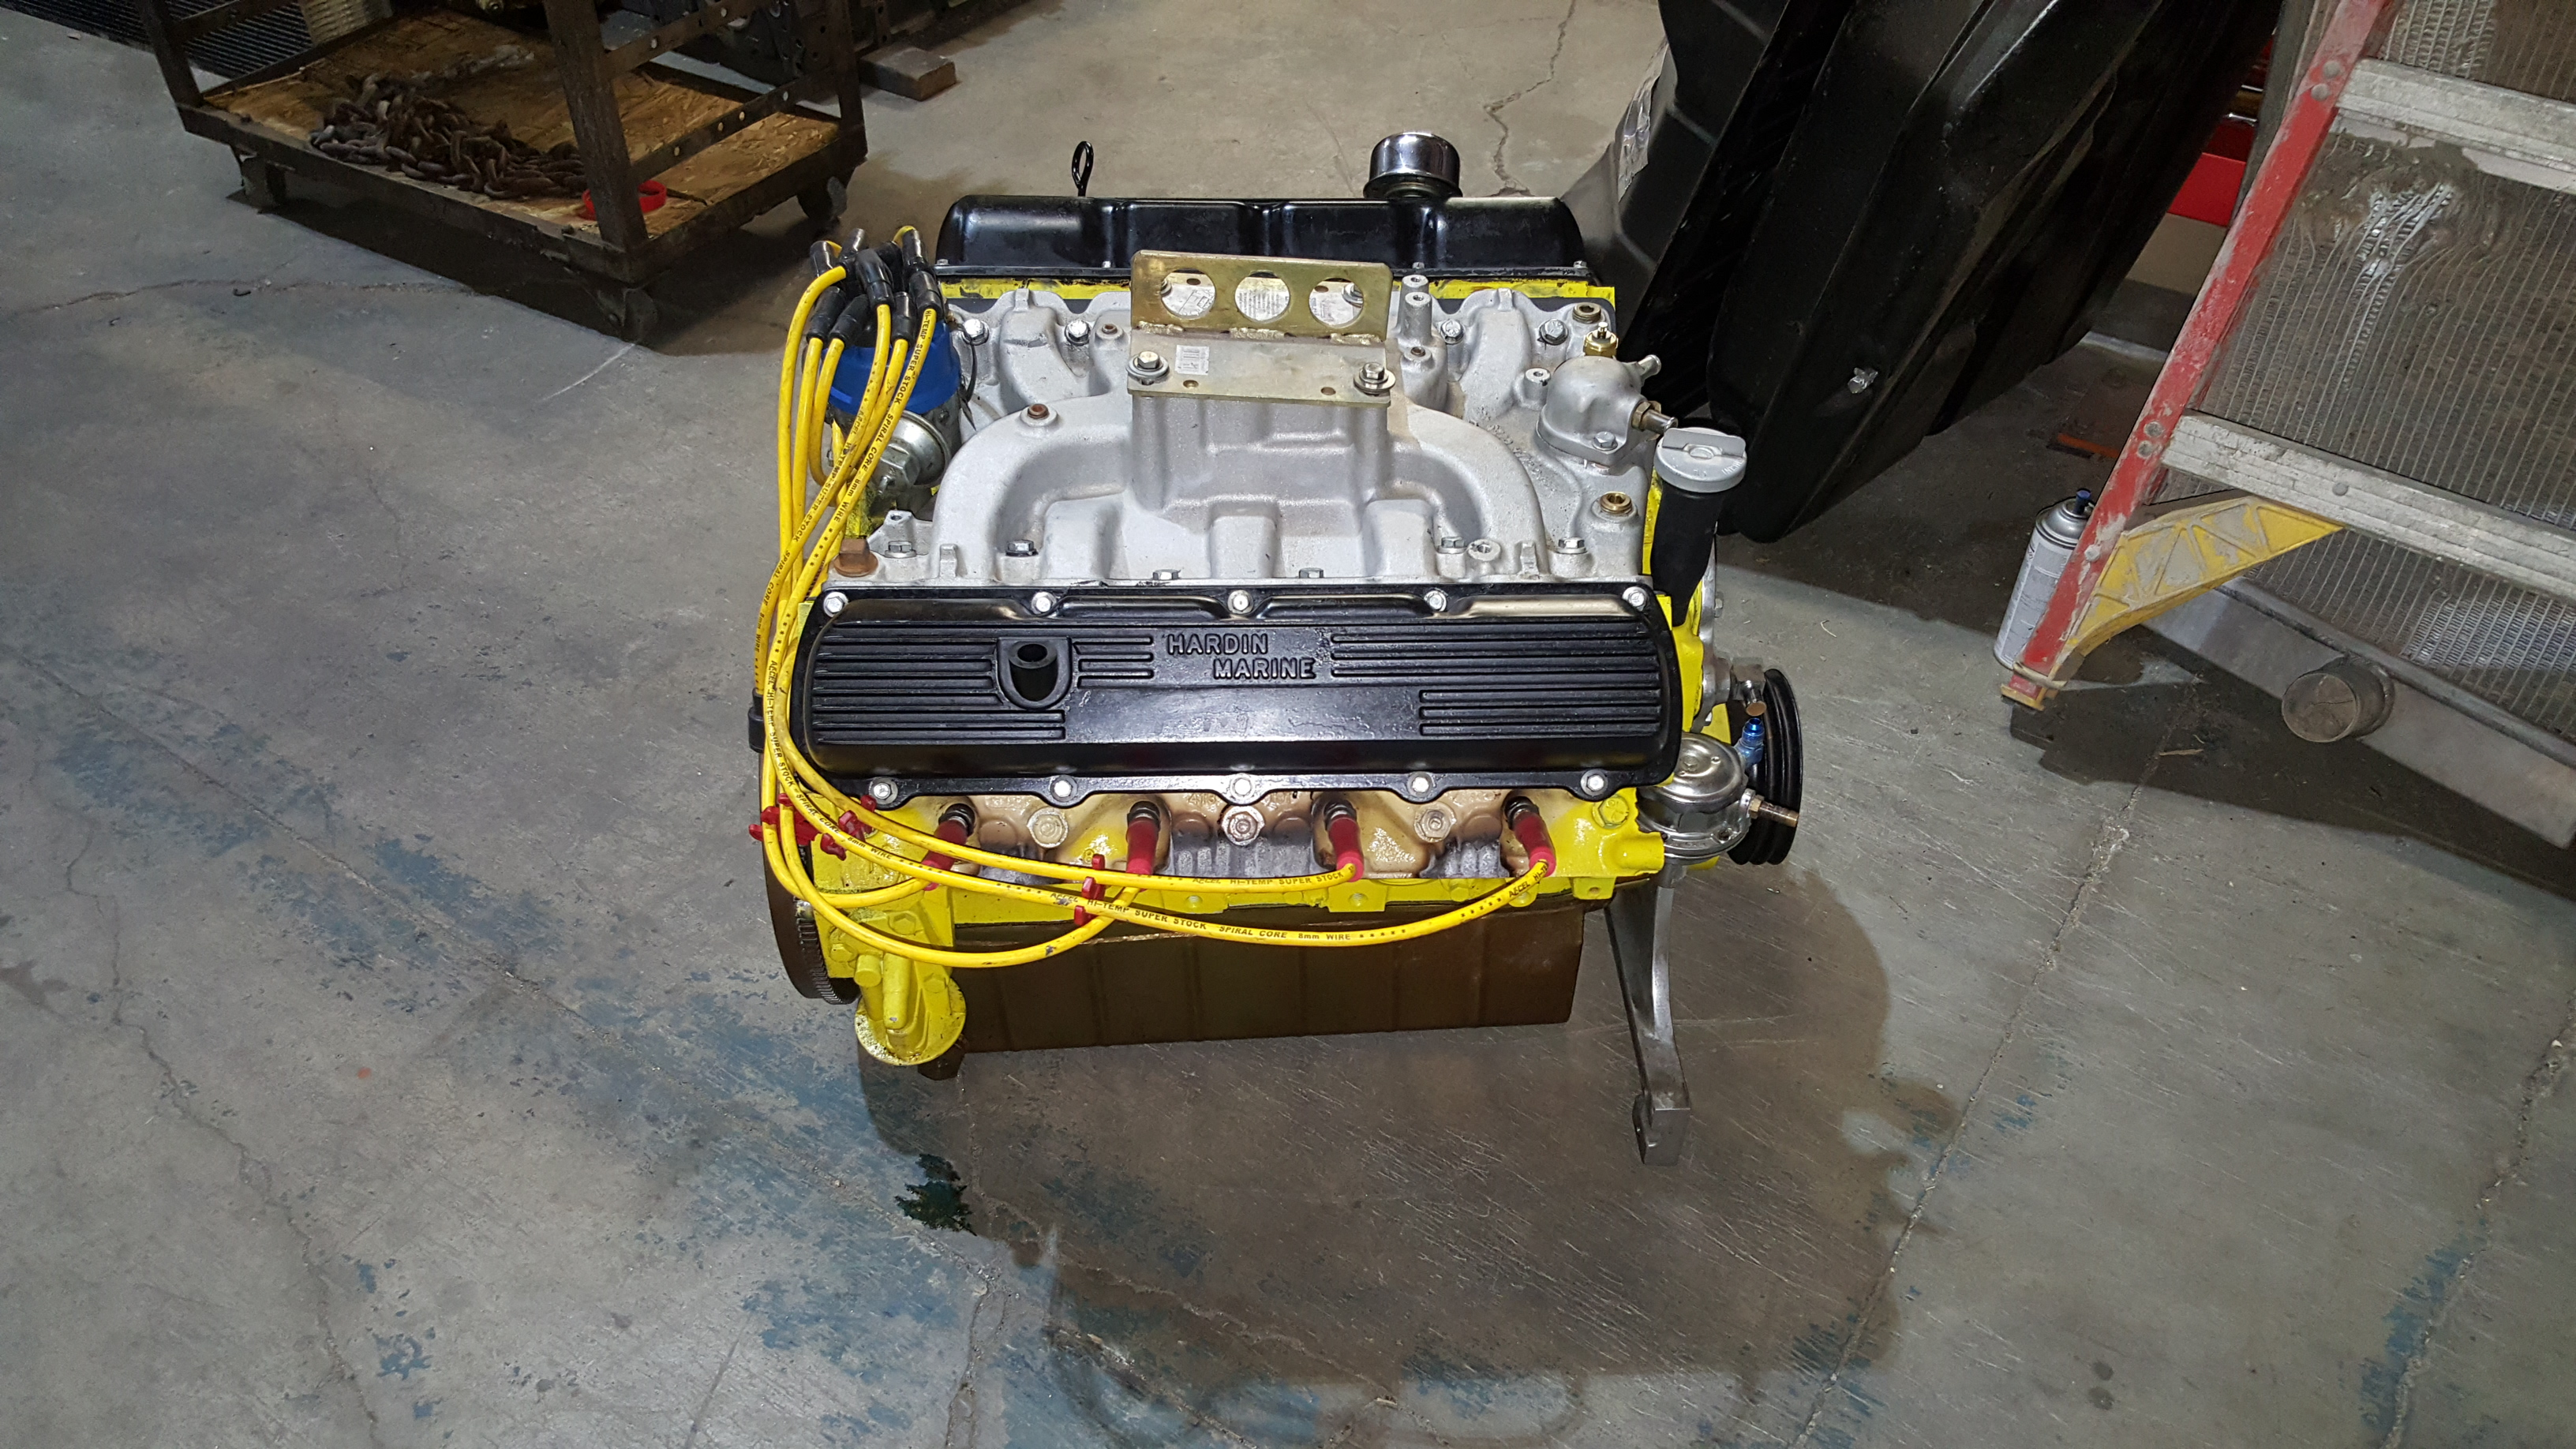 455 olds v8 marine engine rebuilding for a boat motor for Outboard motor machine shop